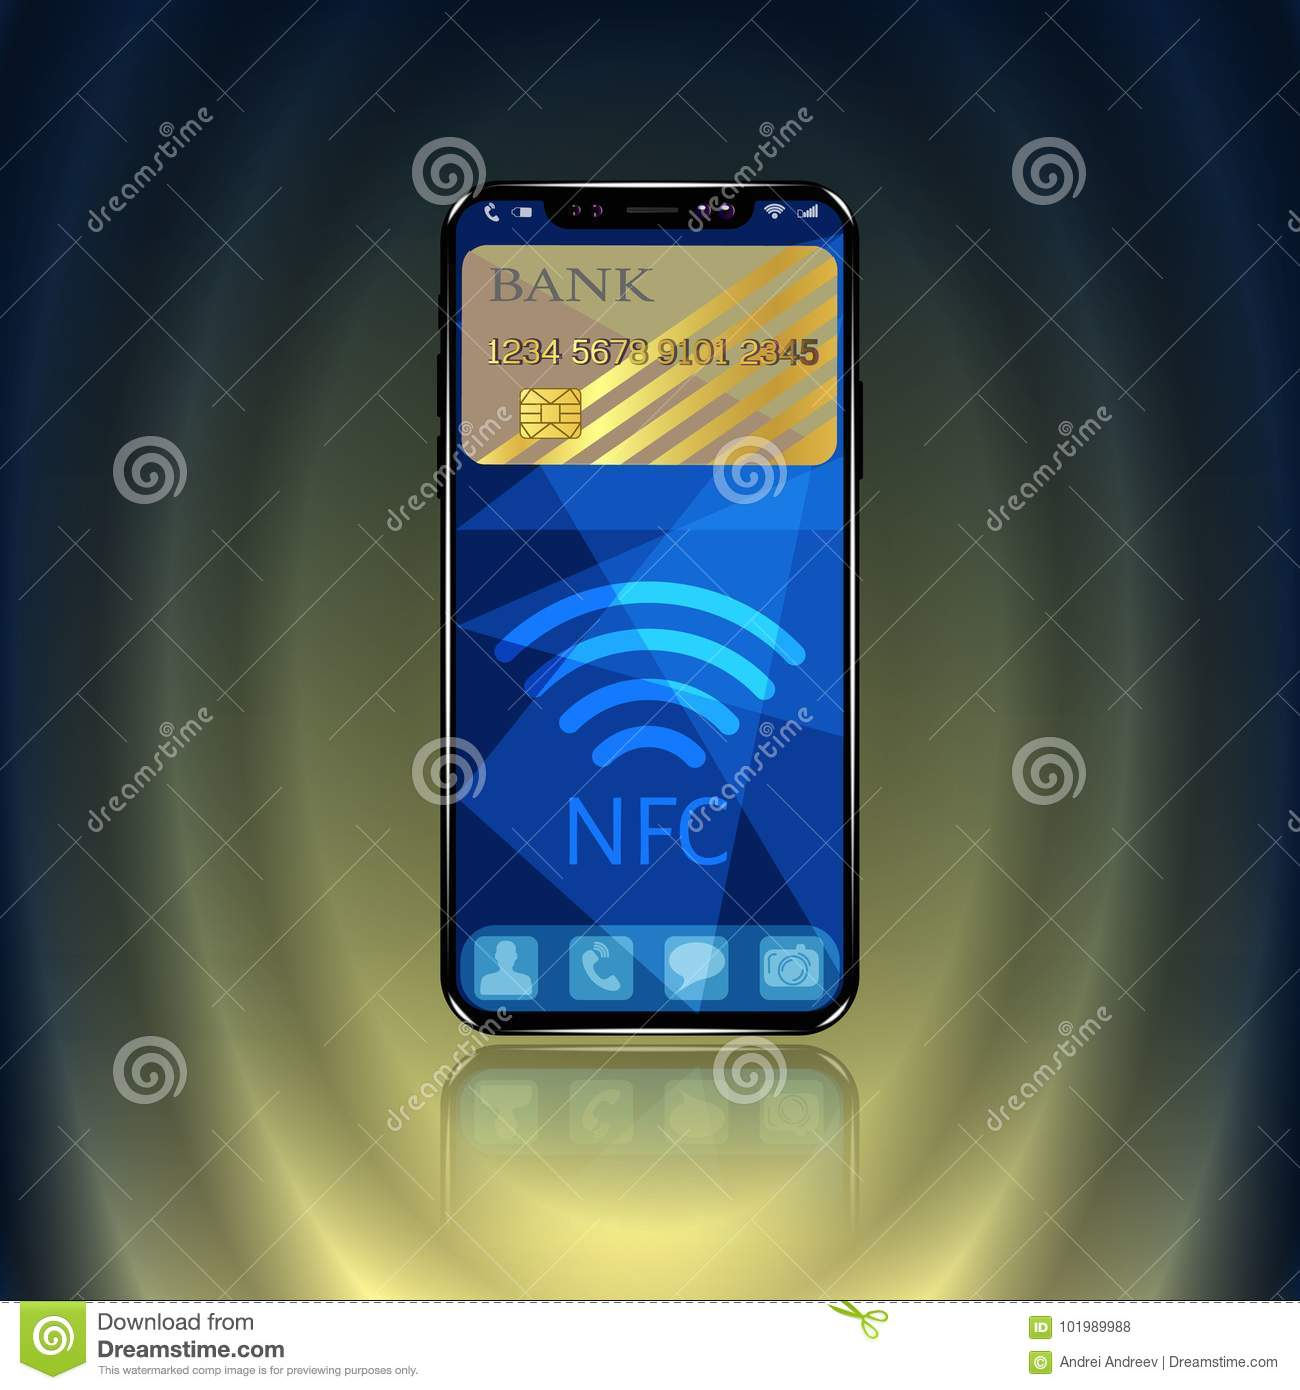 Near Field Communication, NFC Mobile Phone, NFC Payment With Mobile